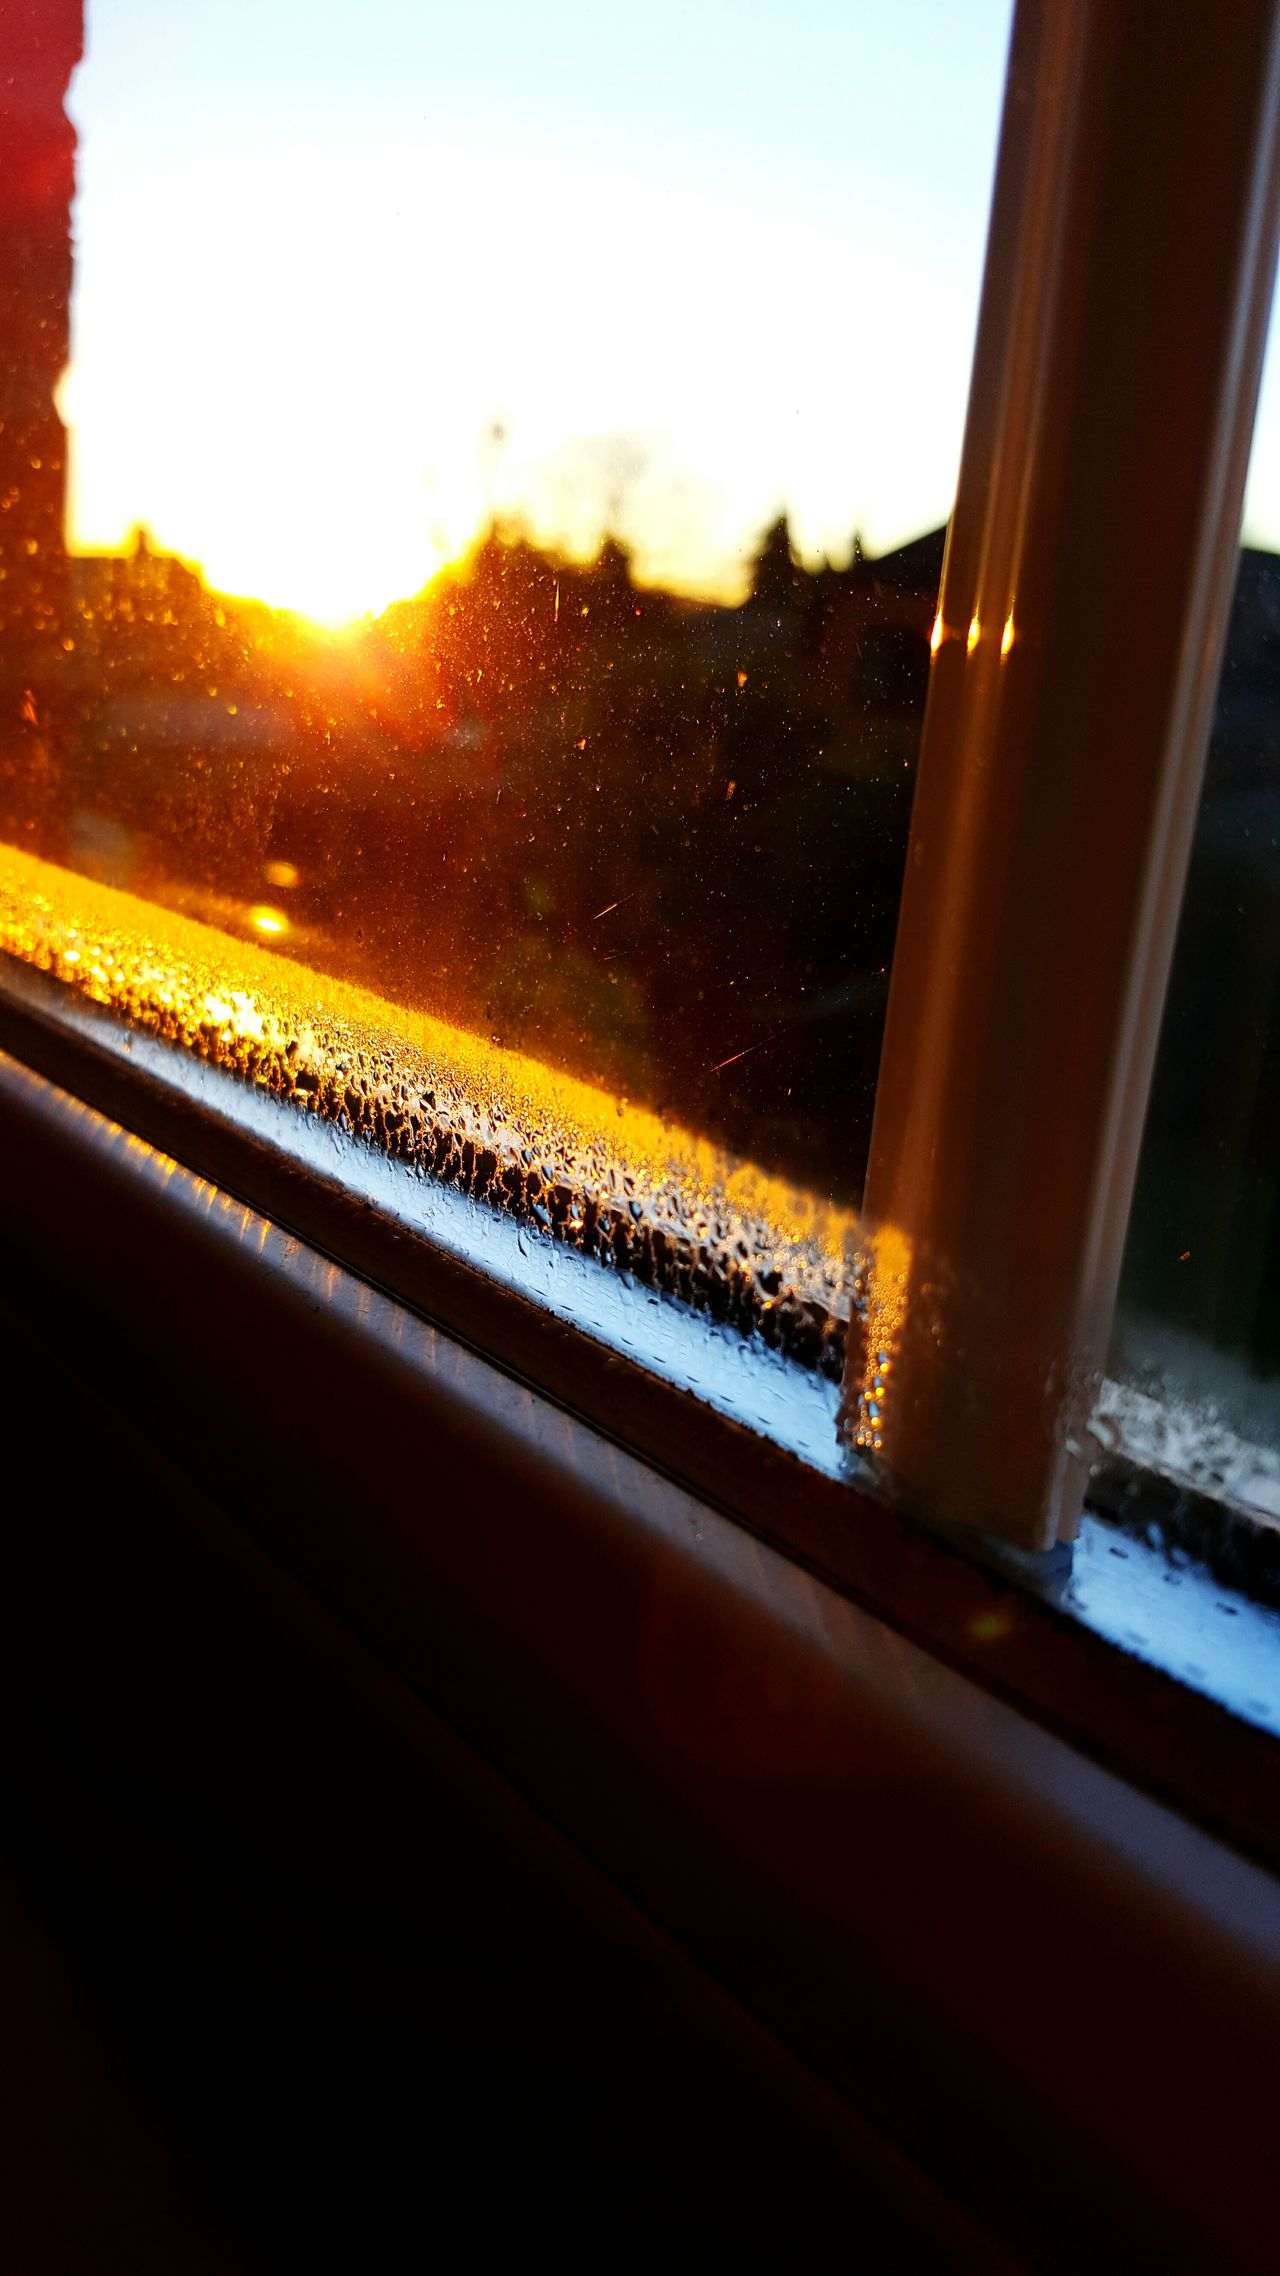 Window Glass - Material Transparent Wet No People Water Nature Day Sky Indoors  Lens Flare Sunlight Sunrise Morning Clear Sky Sun Glare Tree House Nature Outdoors Trees